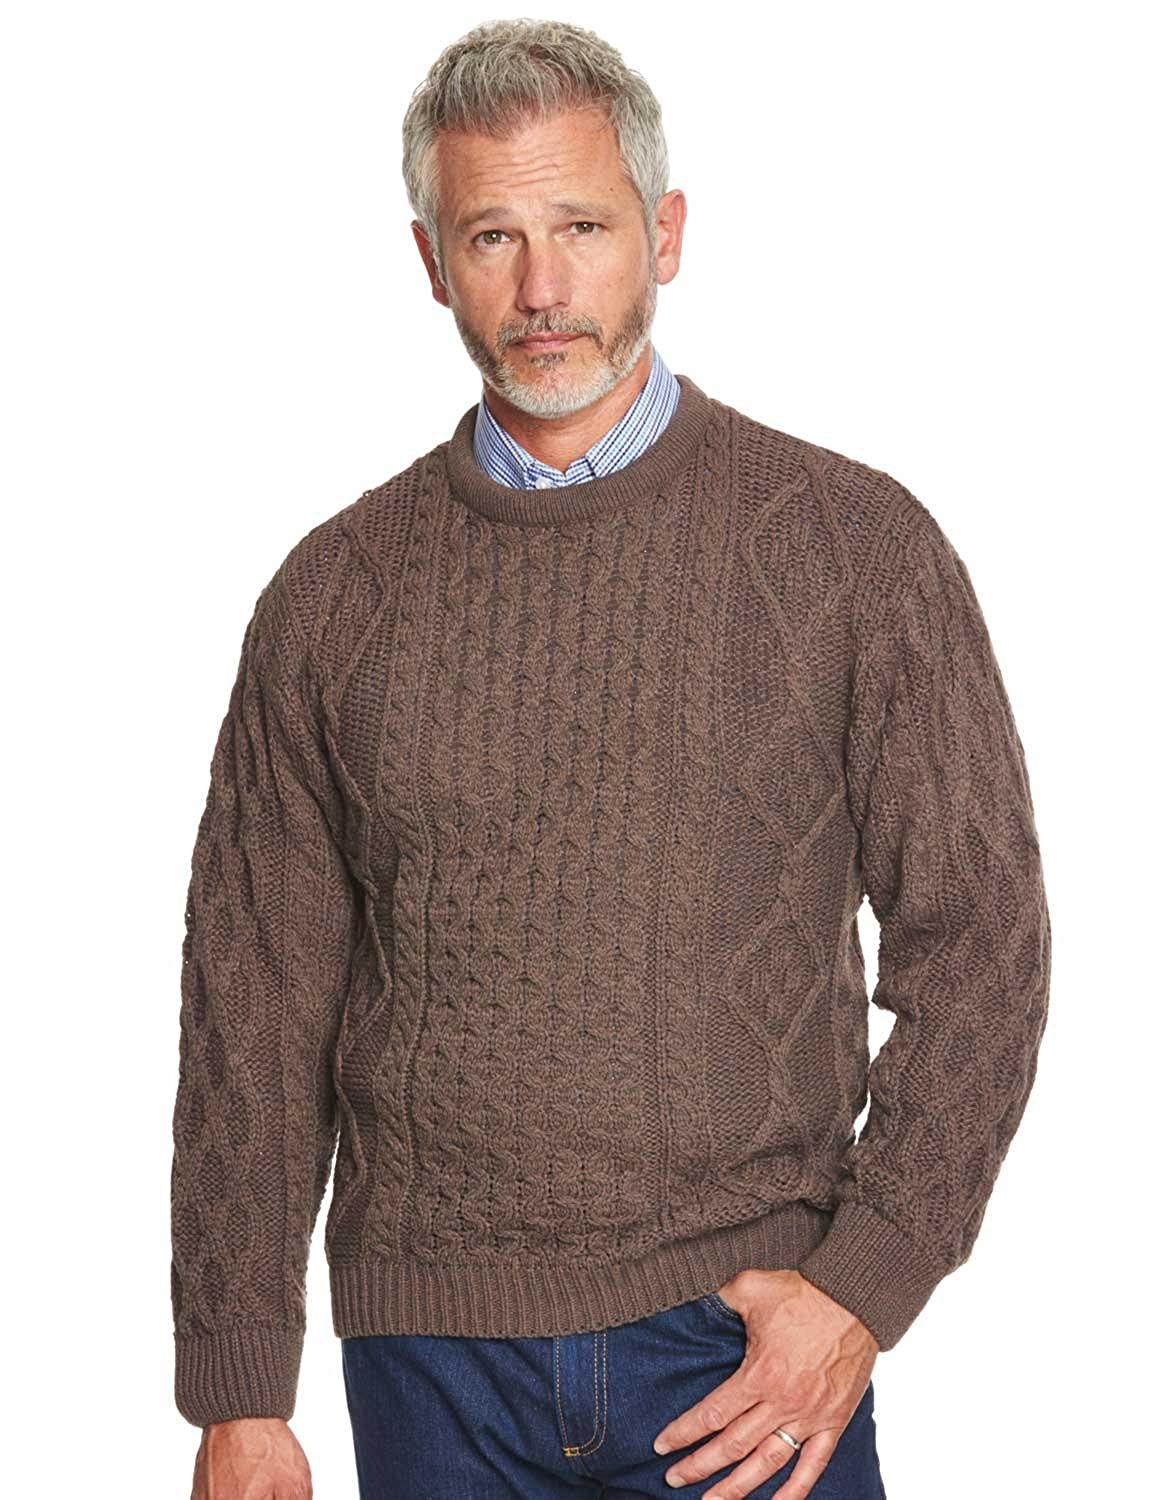 Men's Vintage Sweaters – 1920s to 1960s Retro Jumpers Mens Warm Aran Jumper Cable Sweater �32.00 AT vintagedancer.com